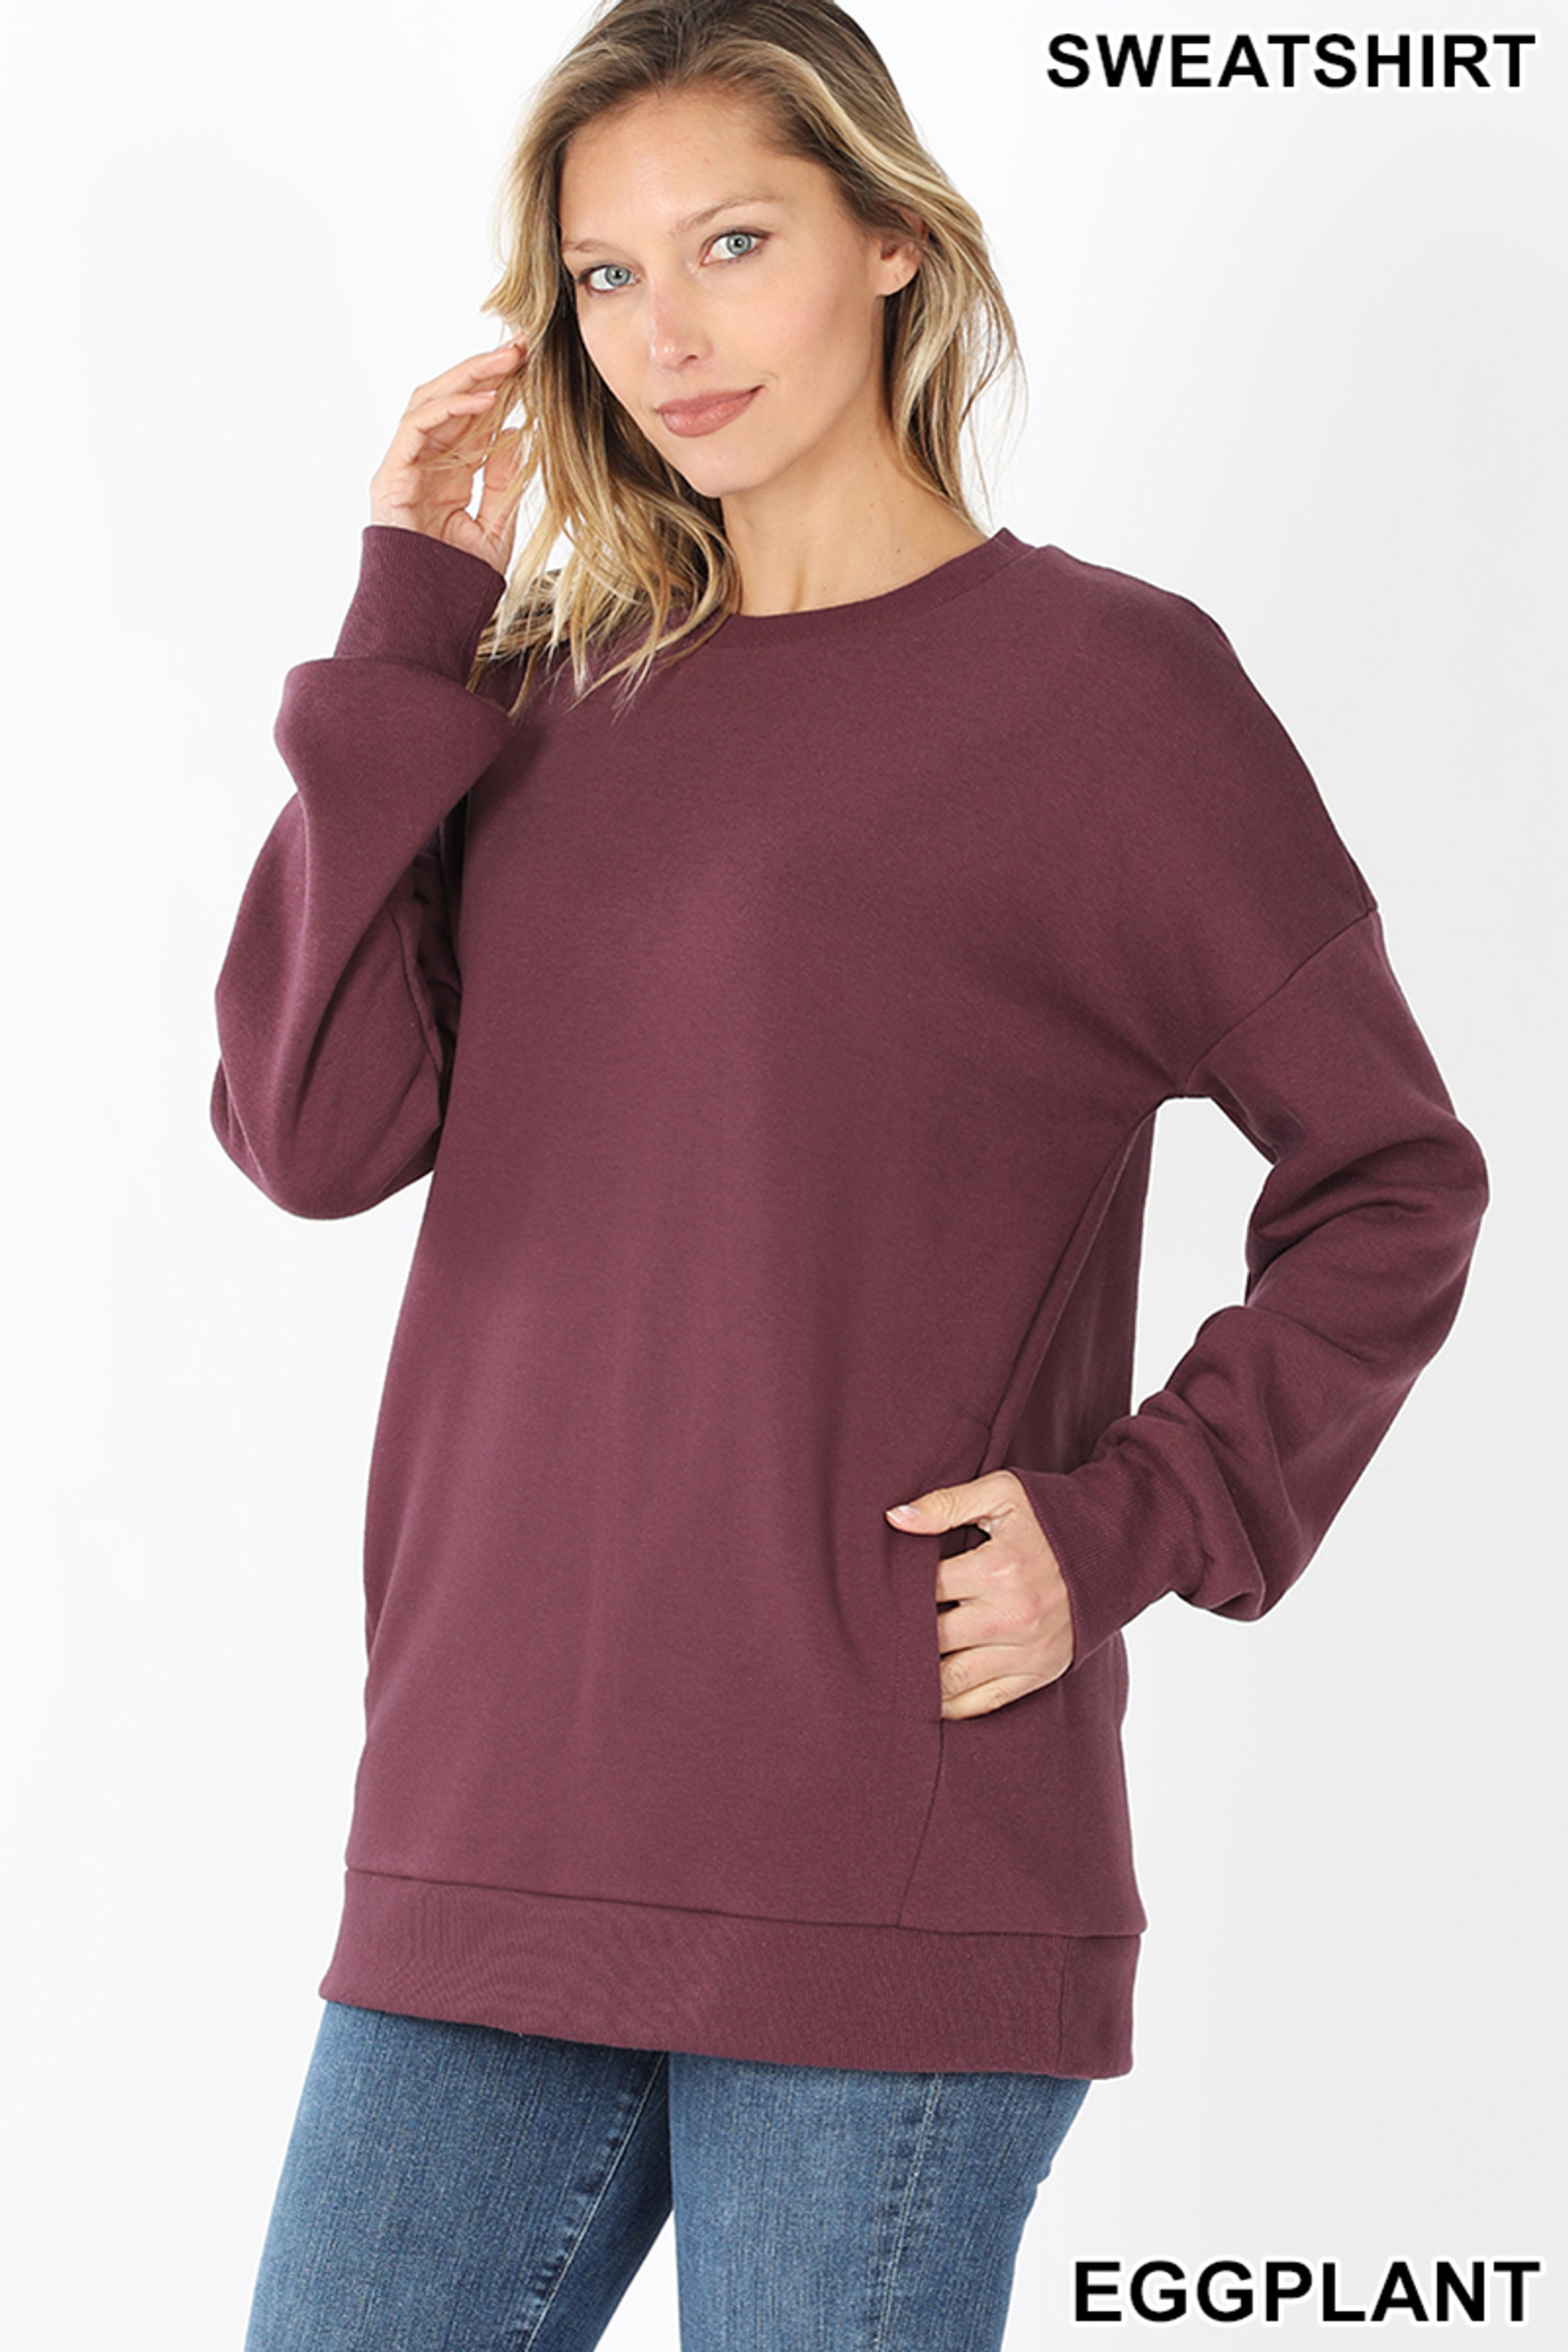 Slightly turned image of Eggplant Round Crew Neck Sweatshirt with Side Pockets